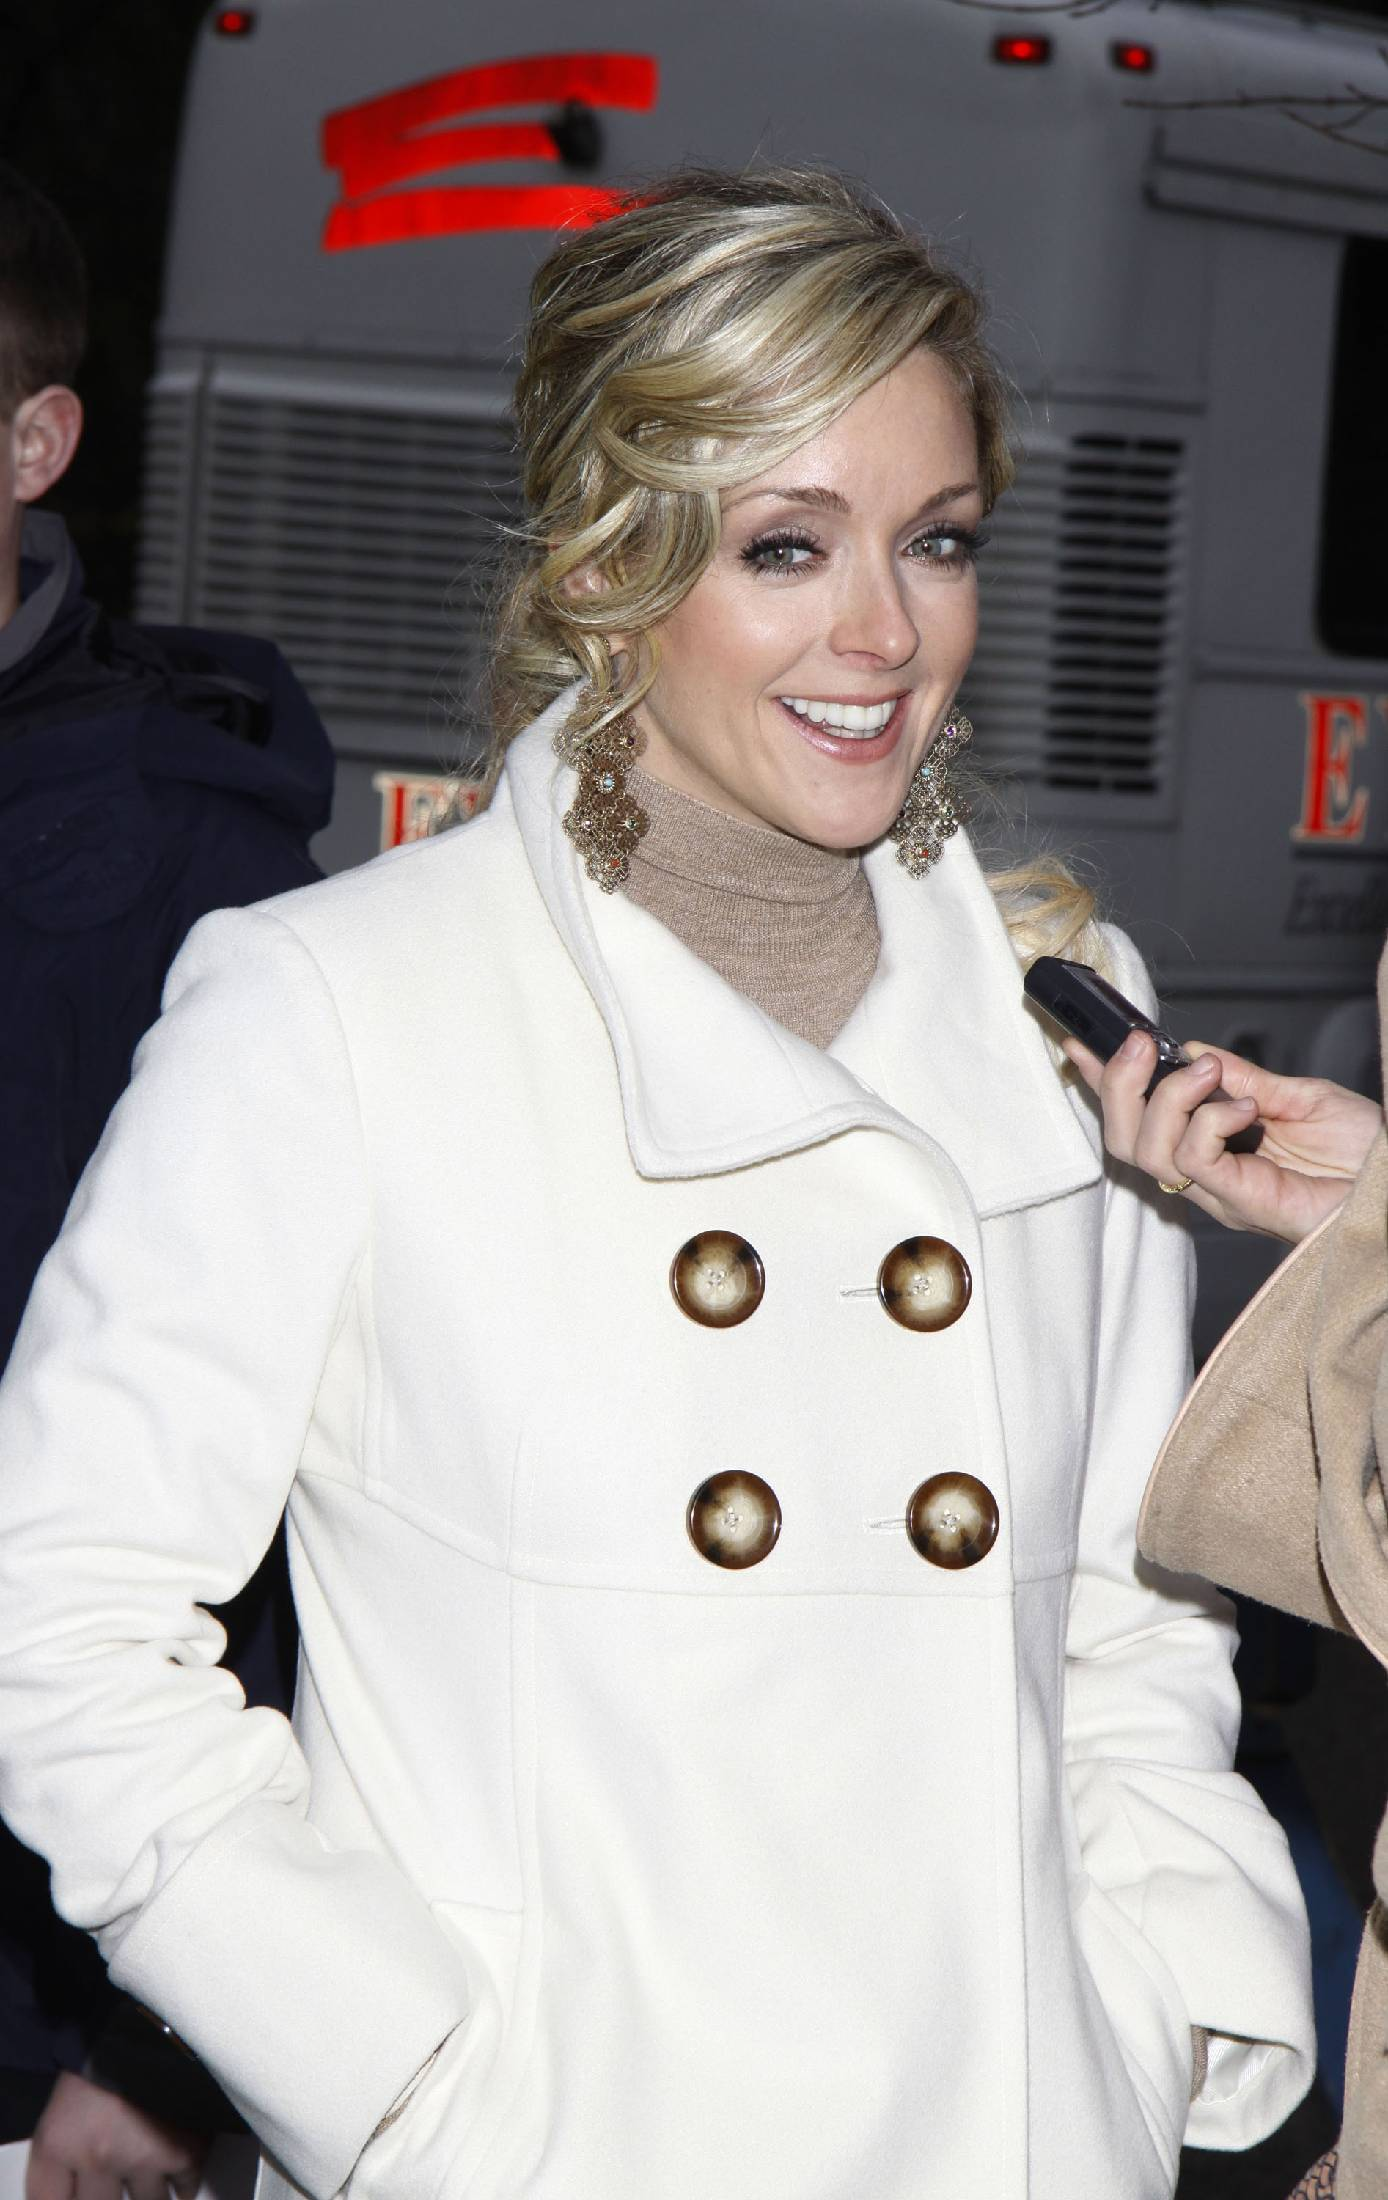 91256_celebrity-paradise.com-The_Elder-Jane_Krakowski_2009-11-26_-_83rd_Thanksgiving_Day_Parade_122_364lo.jpg